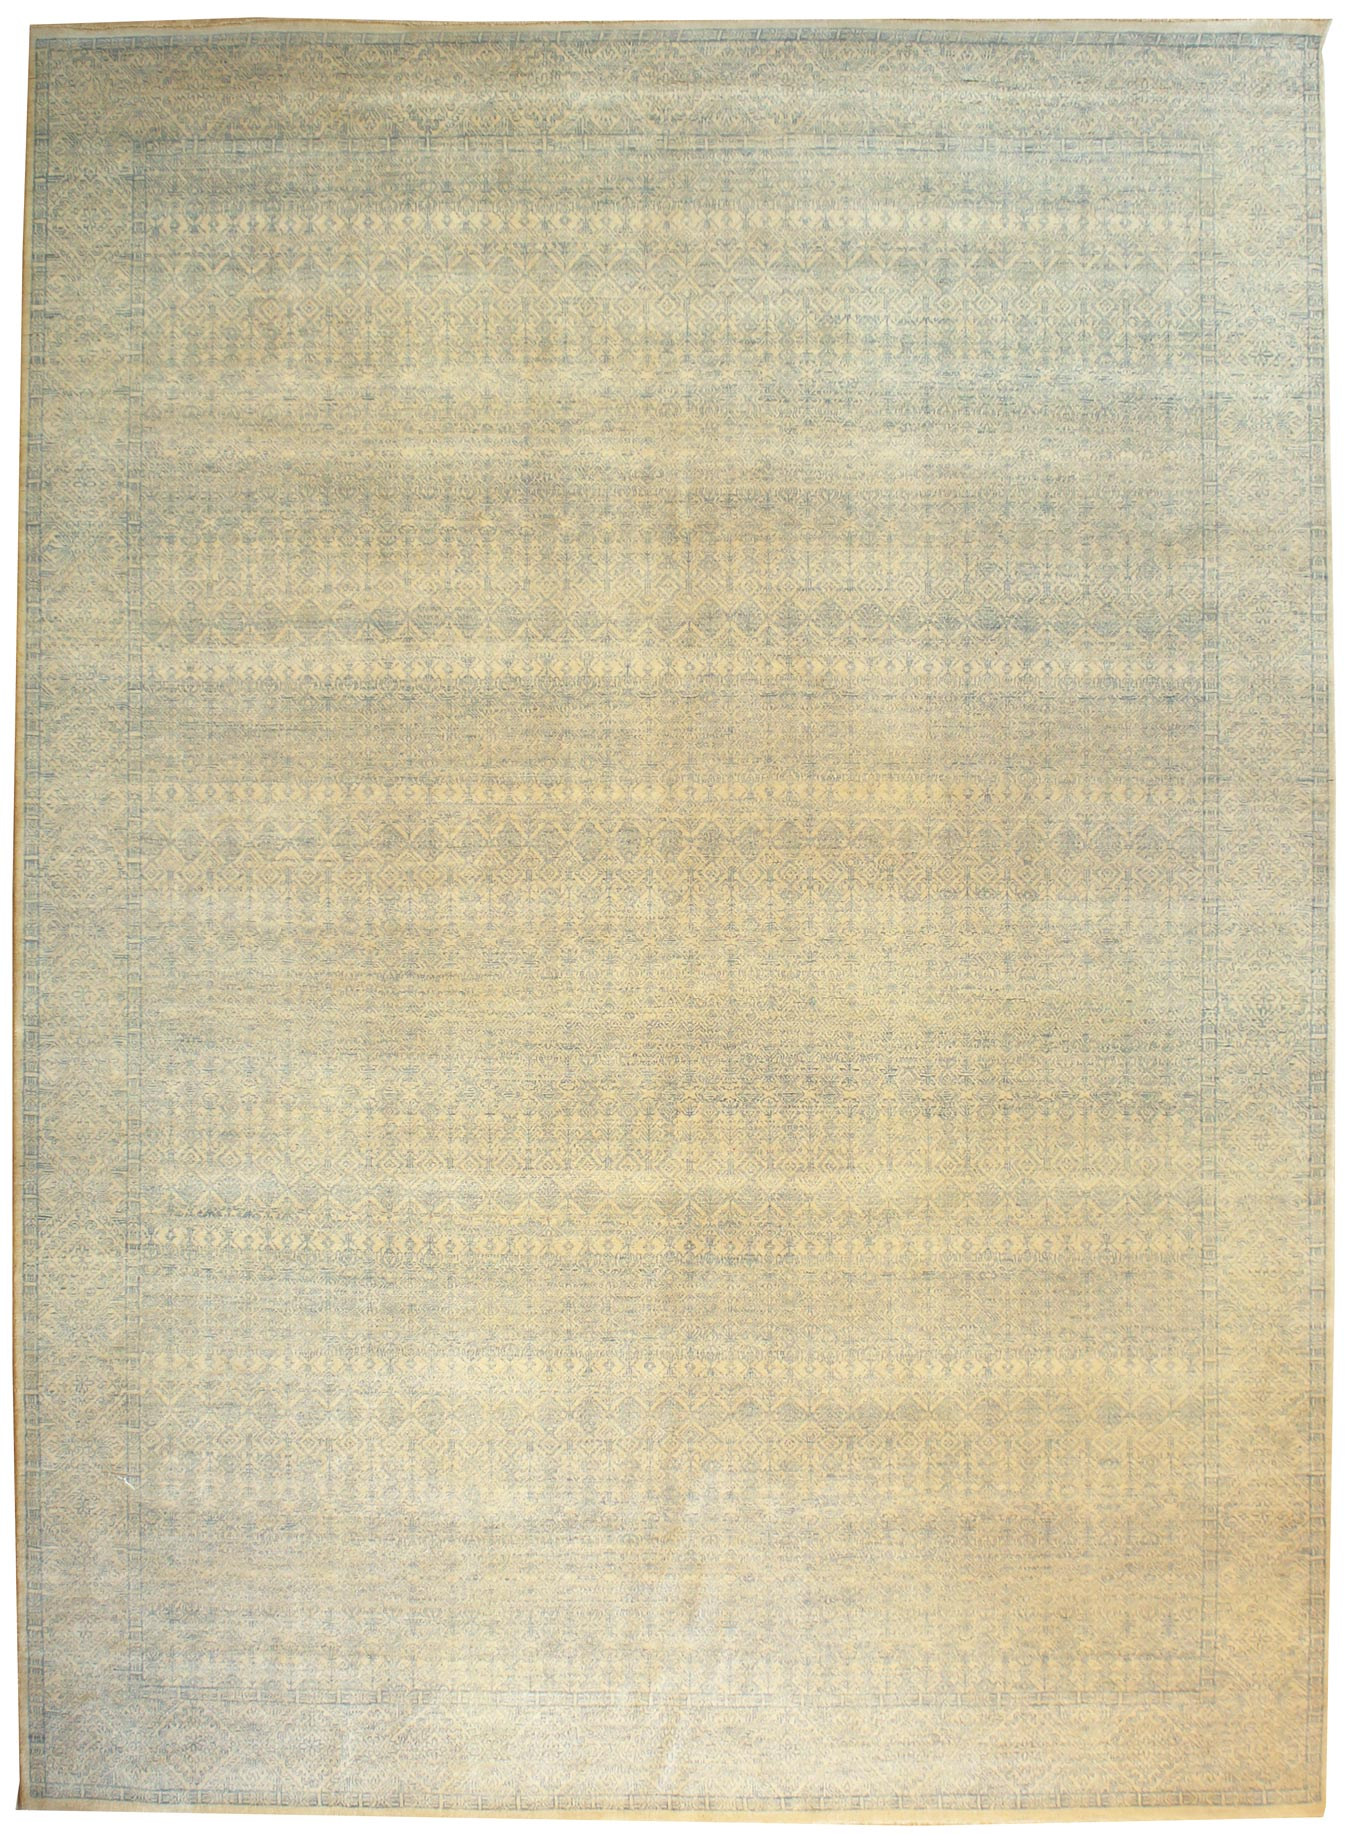 Age Handwoven Contemporary Rug